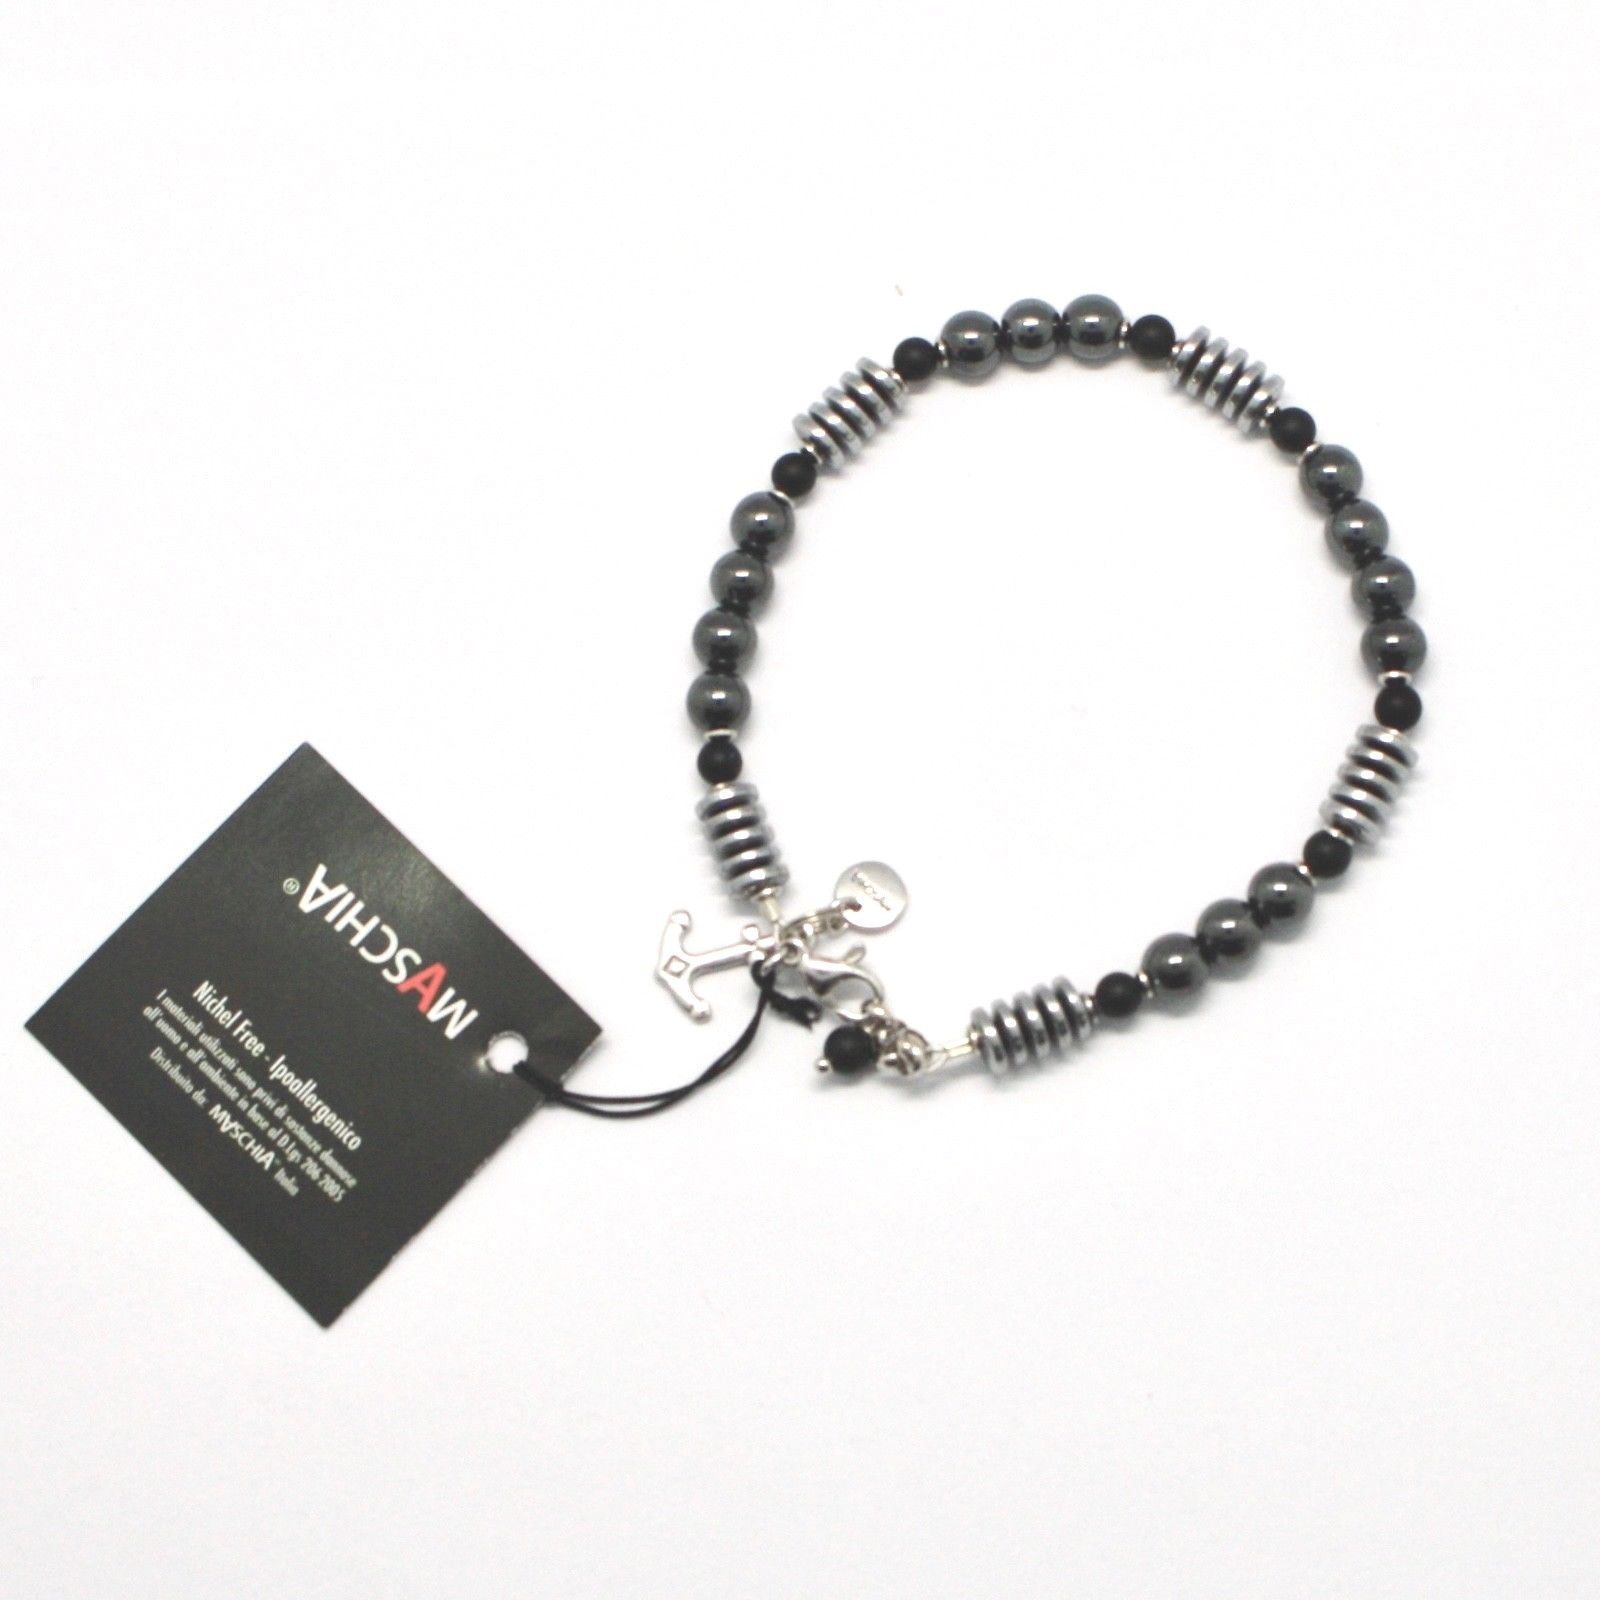 Silver Bracelet 925 with Onyx and Hematite BLE-1 Made in Italy by Maschia